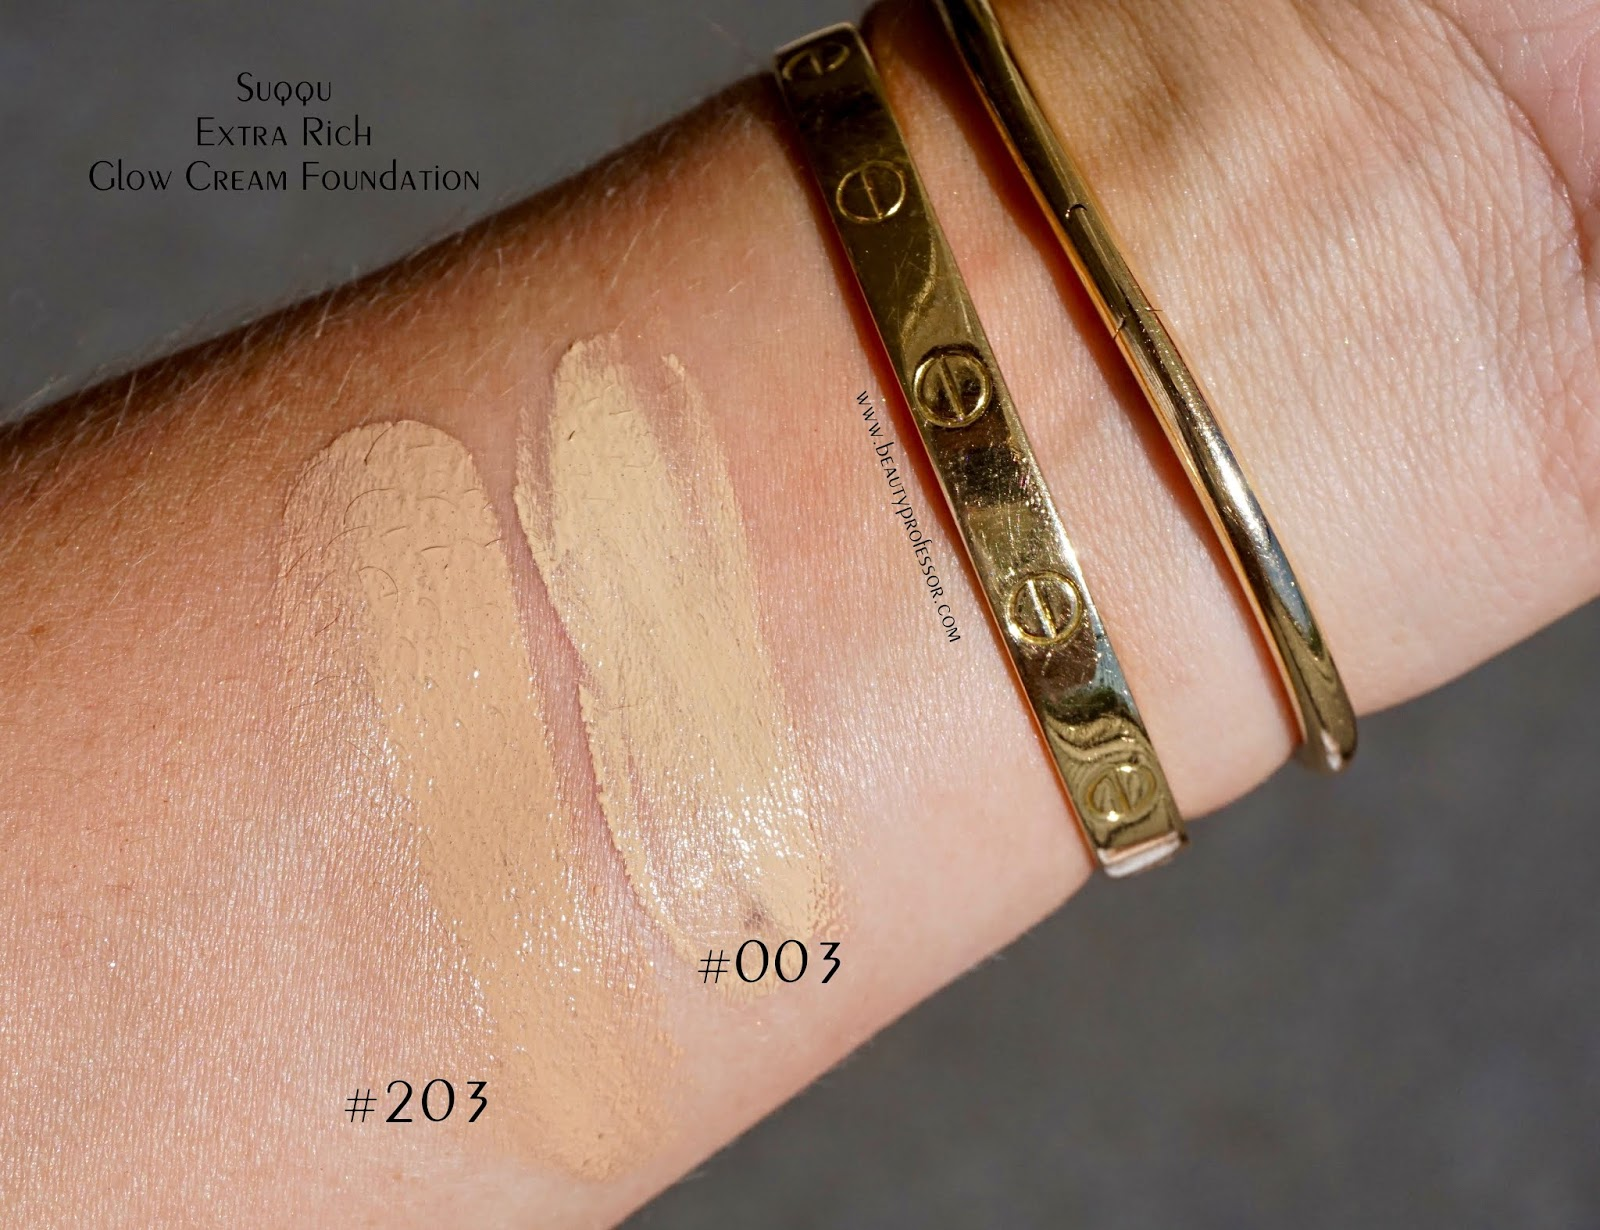 SUQQU Extra Rich Glow Cream Foundation swatches